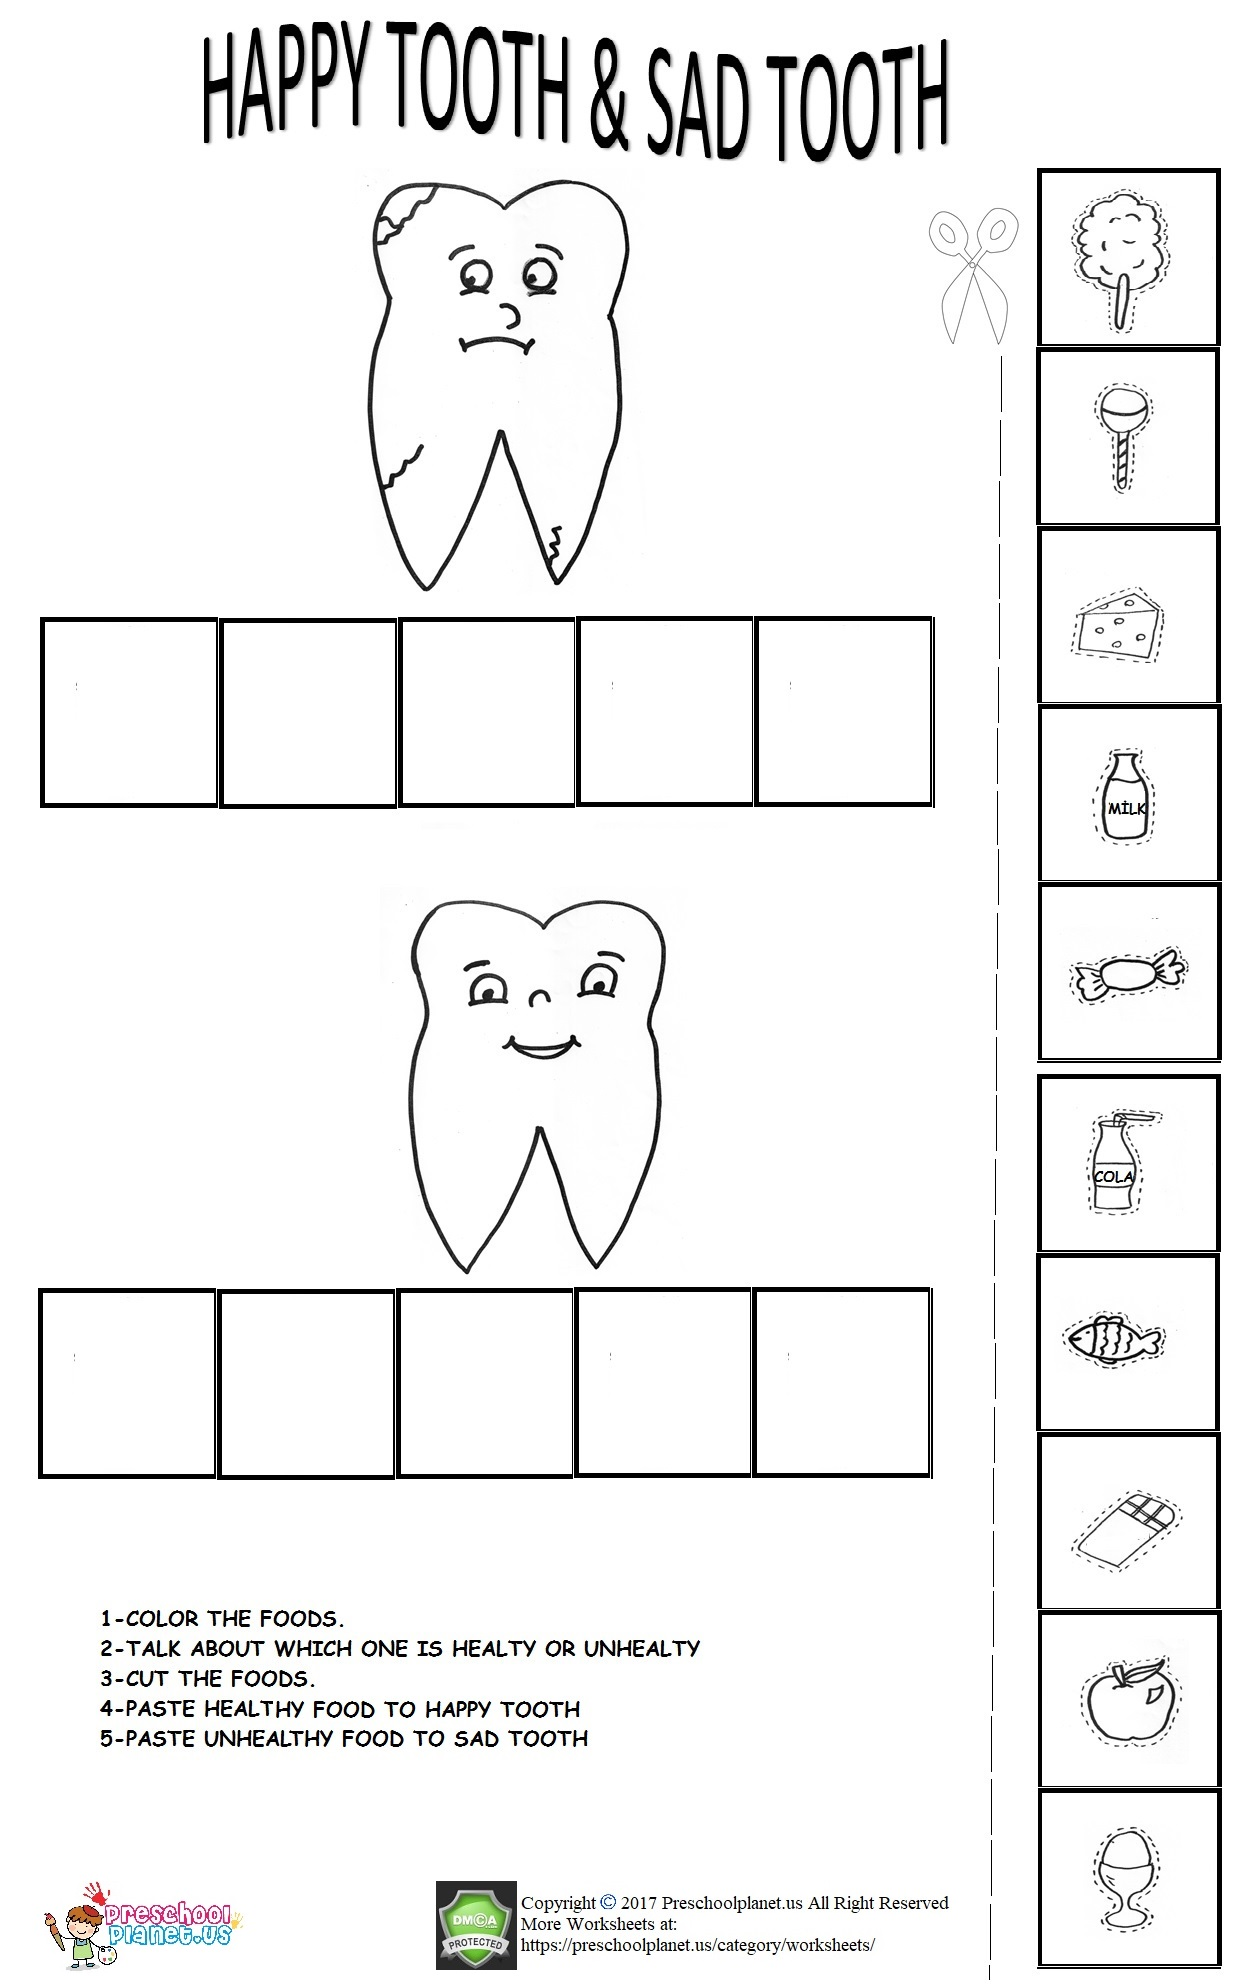 photograph relating to Dental Health Printable Activities called Dentist Worksheets Illustrations or photos - Opposite Appear